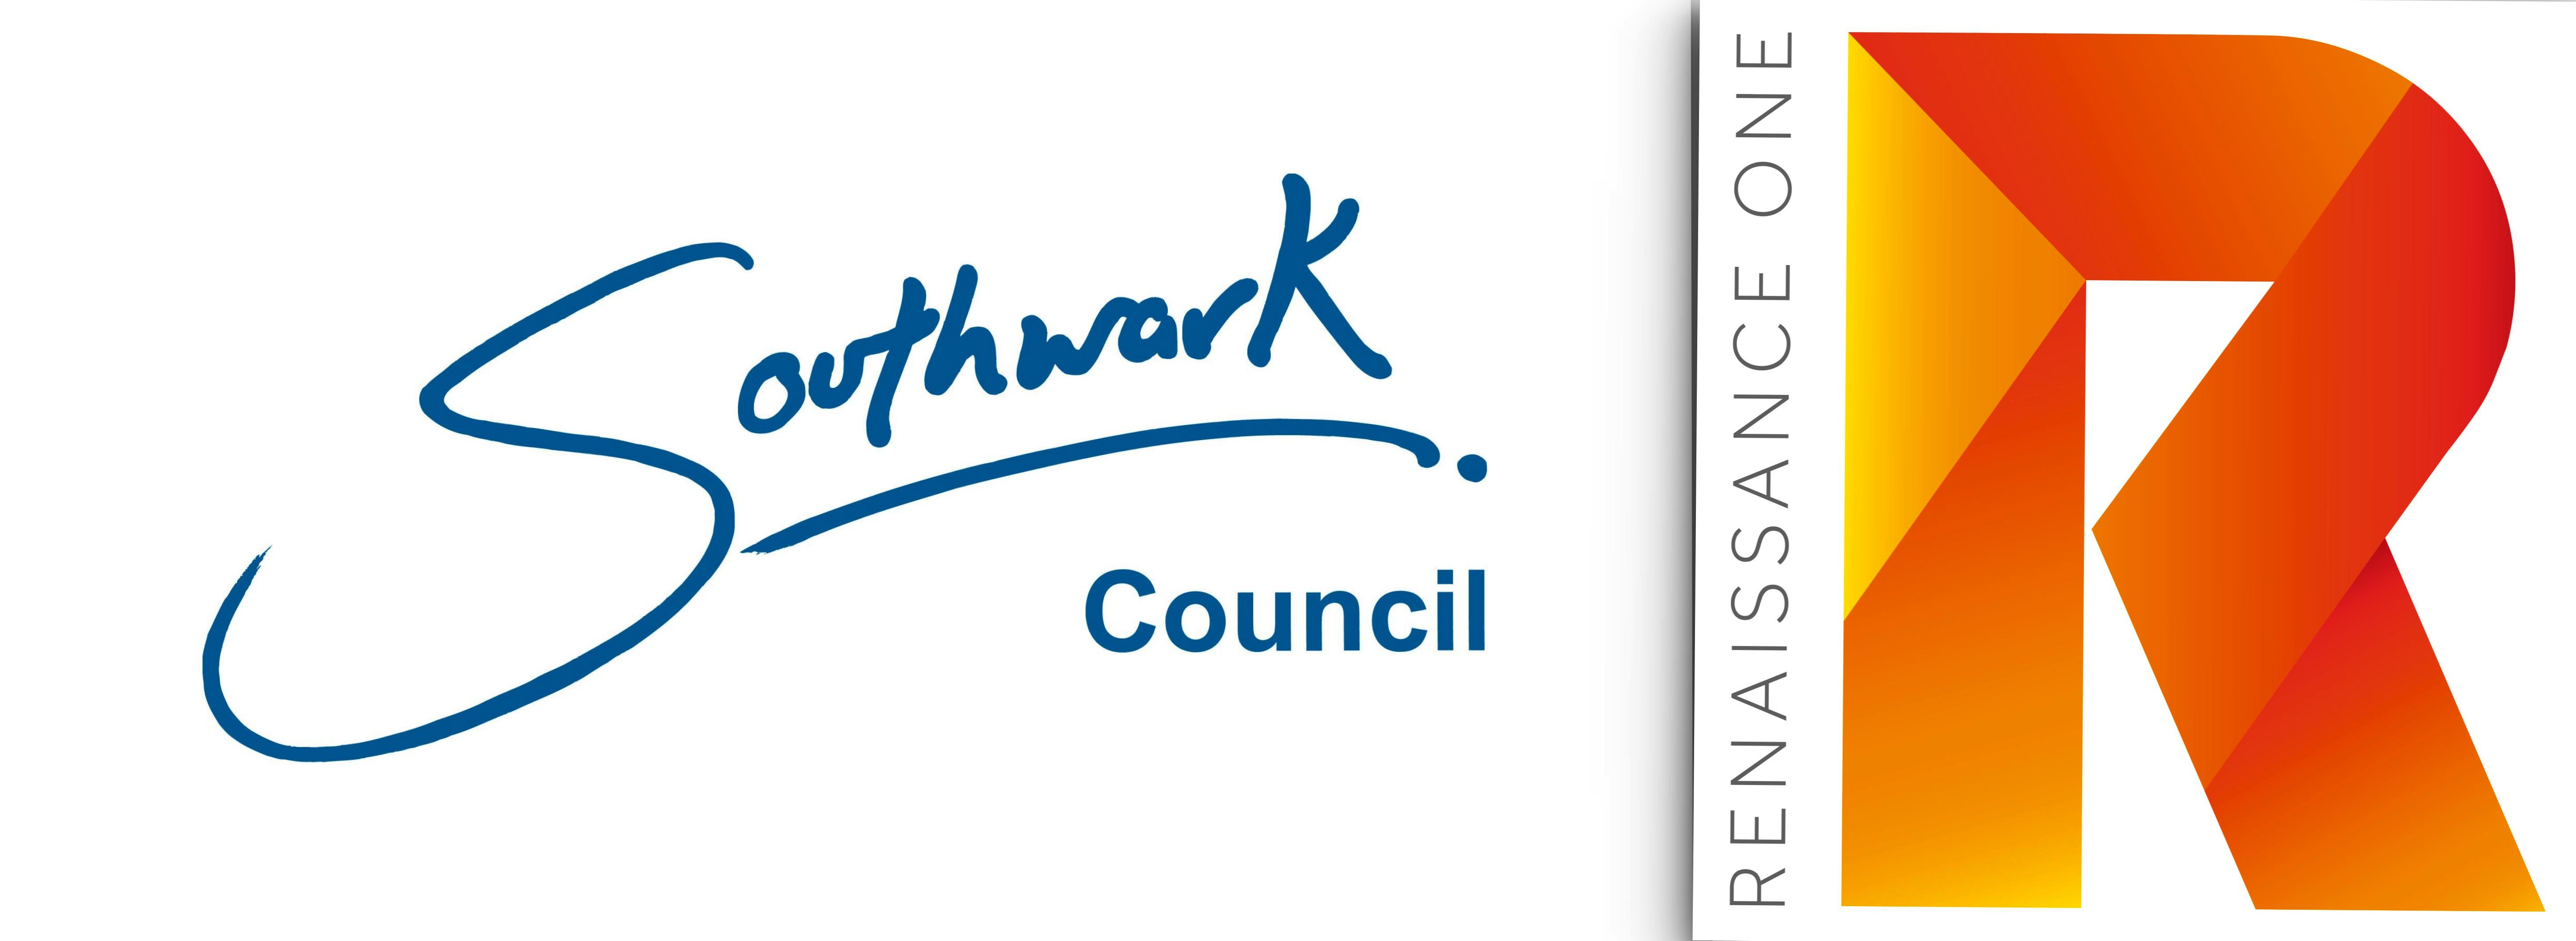 logos of Southwark Council and Renaissance One